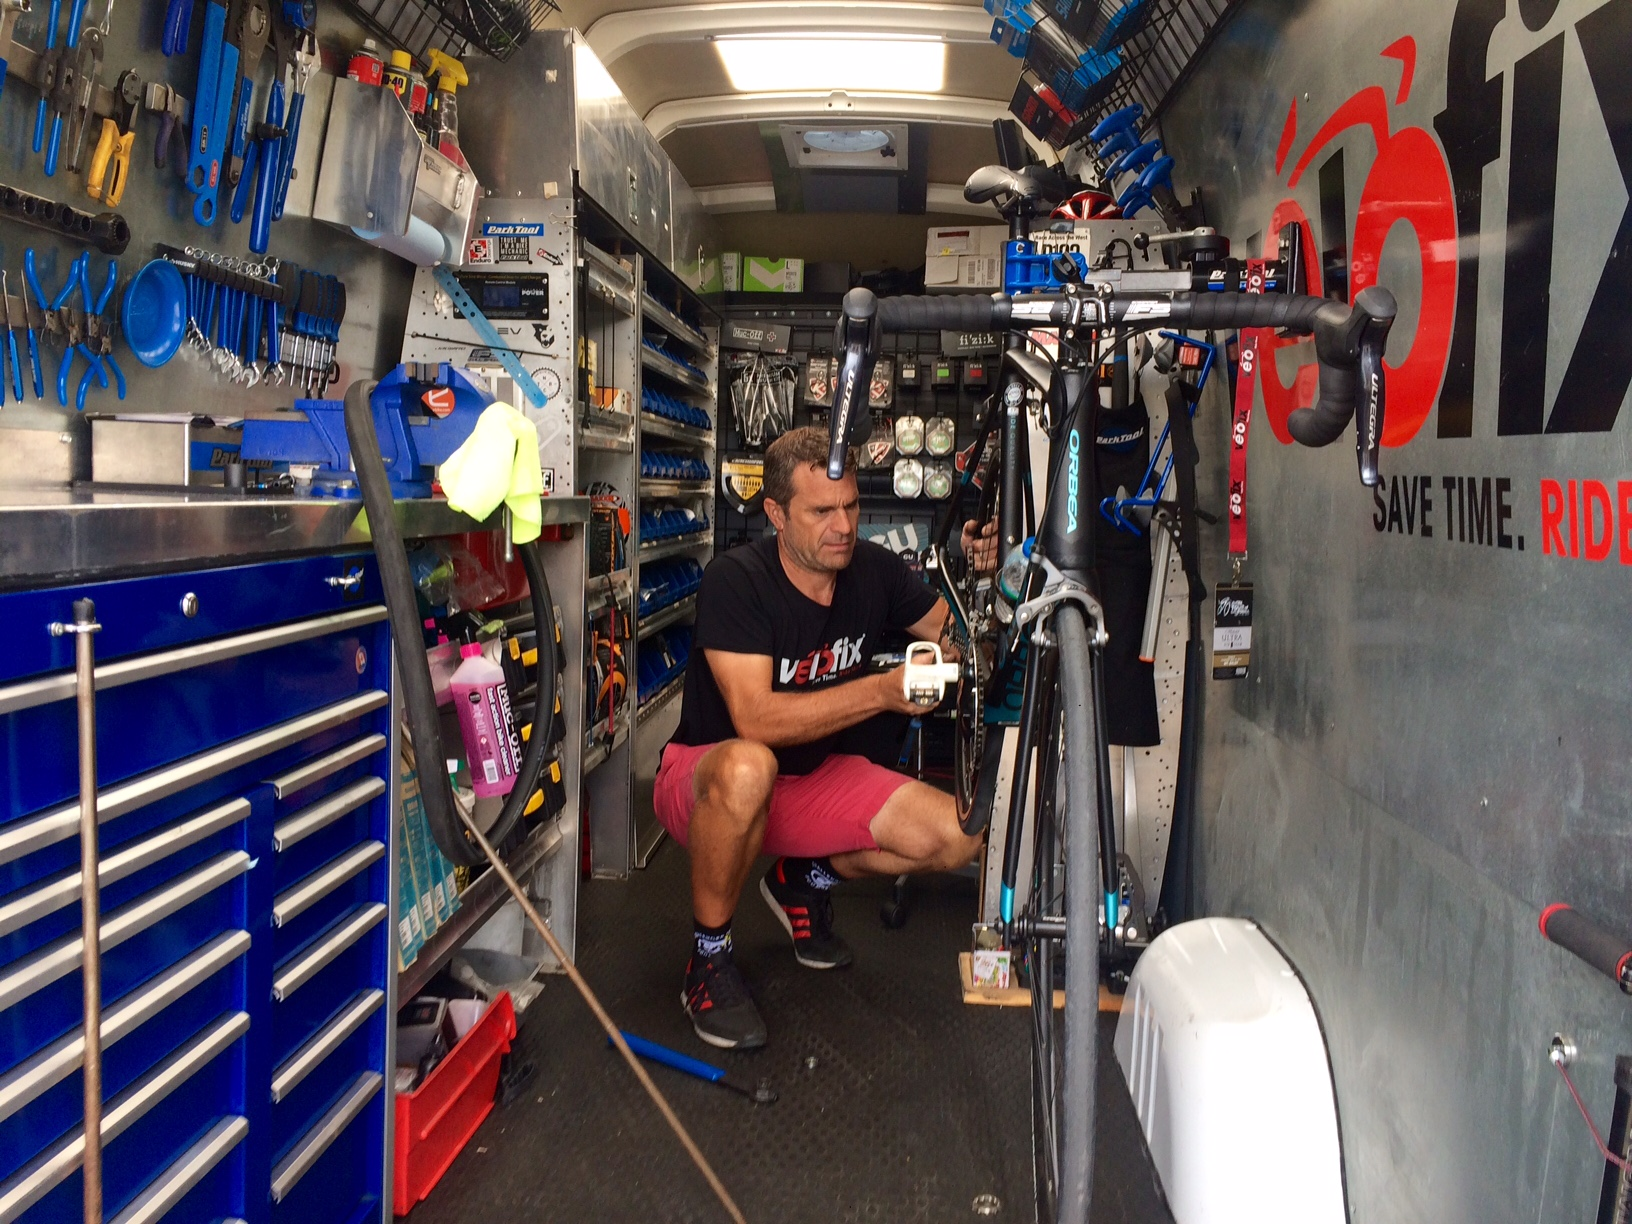 Paul at Velofix supporting our ride!